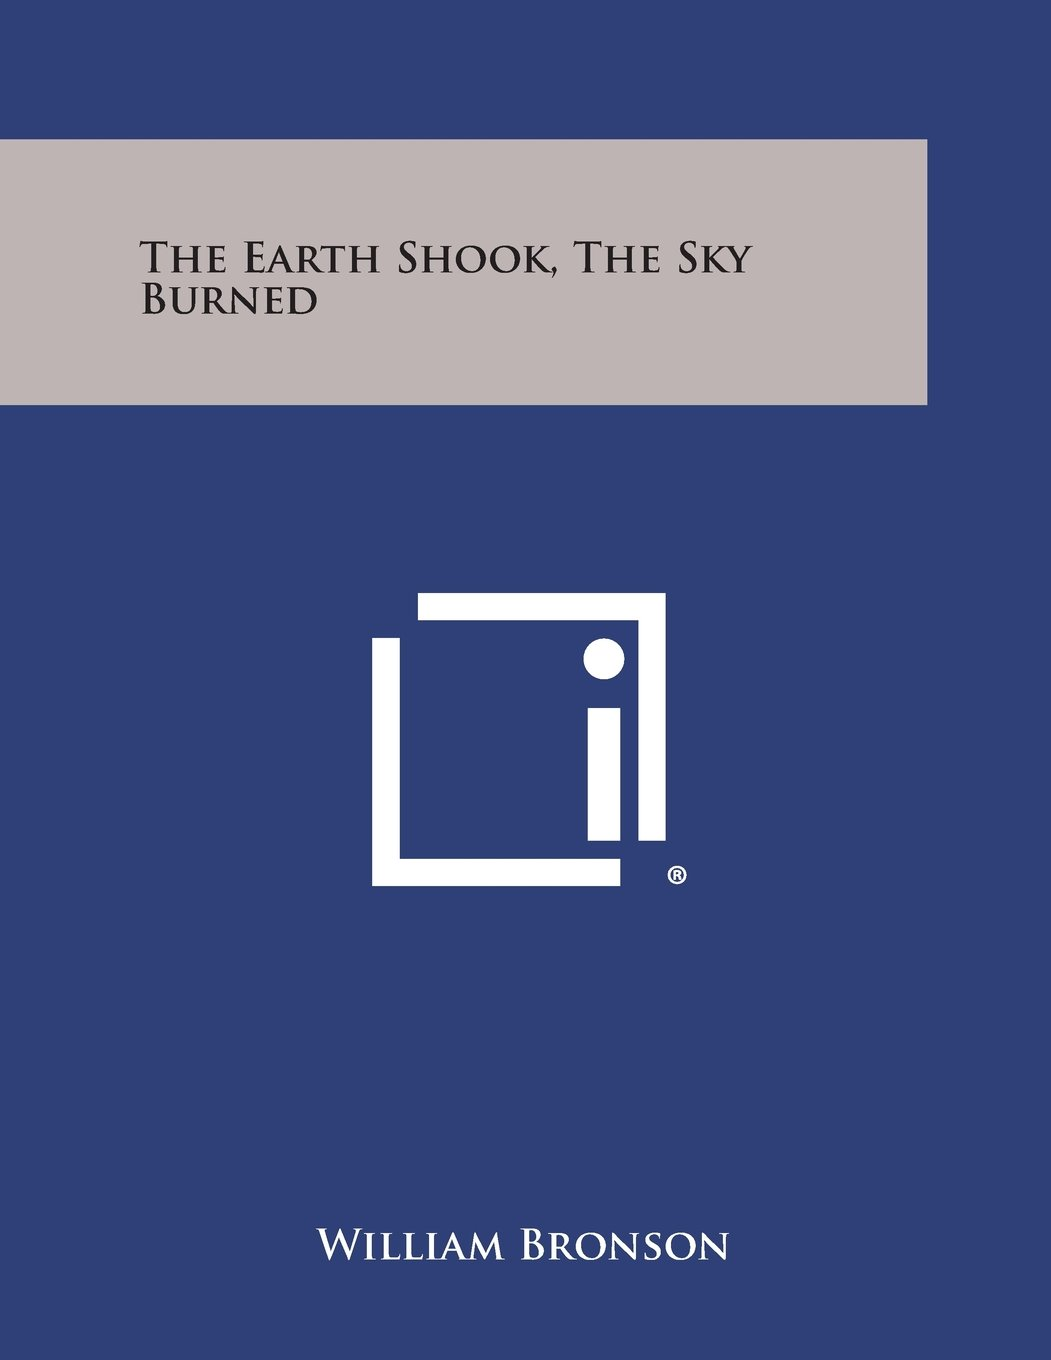 The earth shook the sky burned william bronson 9781258818401 the earth shook the sky burned william bronson 9781258818401 amazon books fandeluxe Image collections